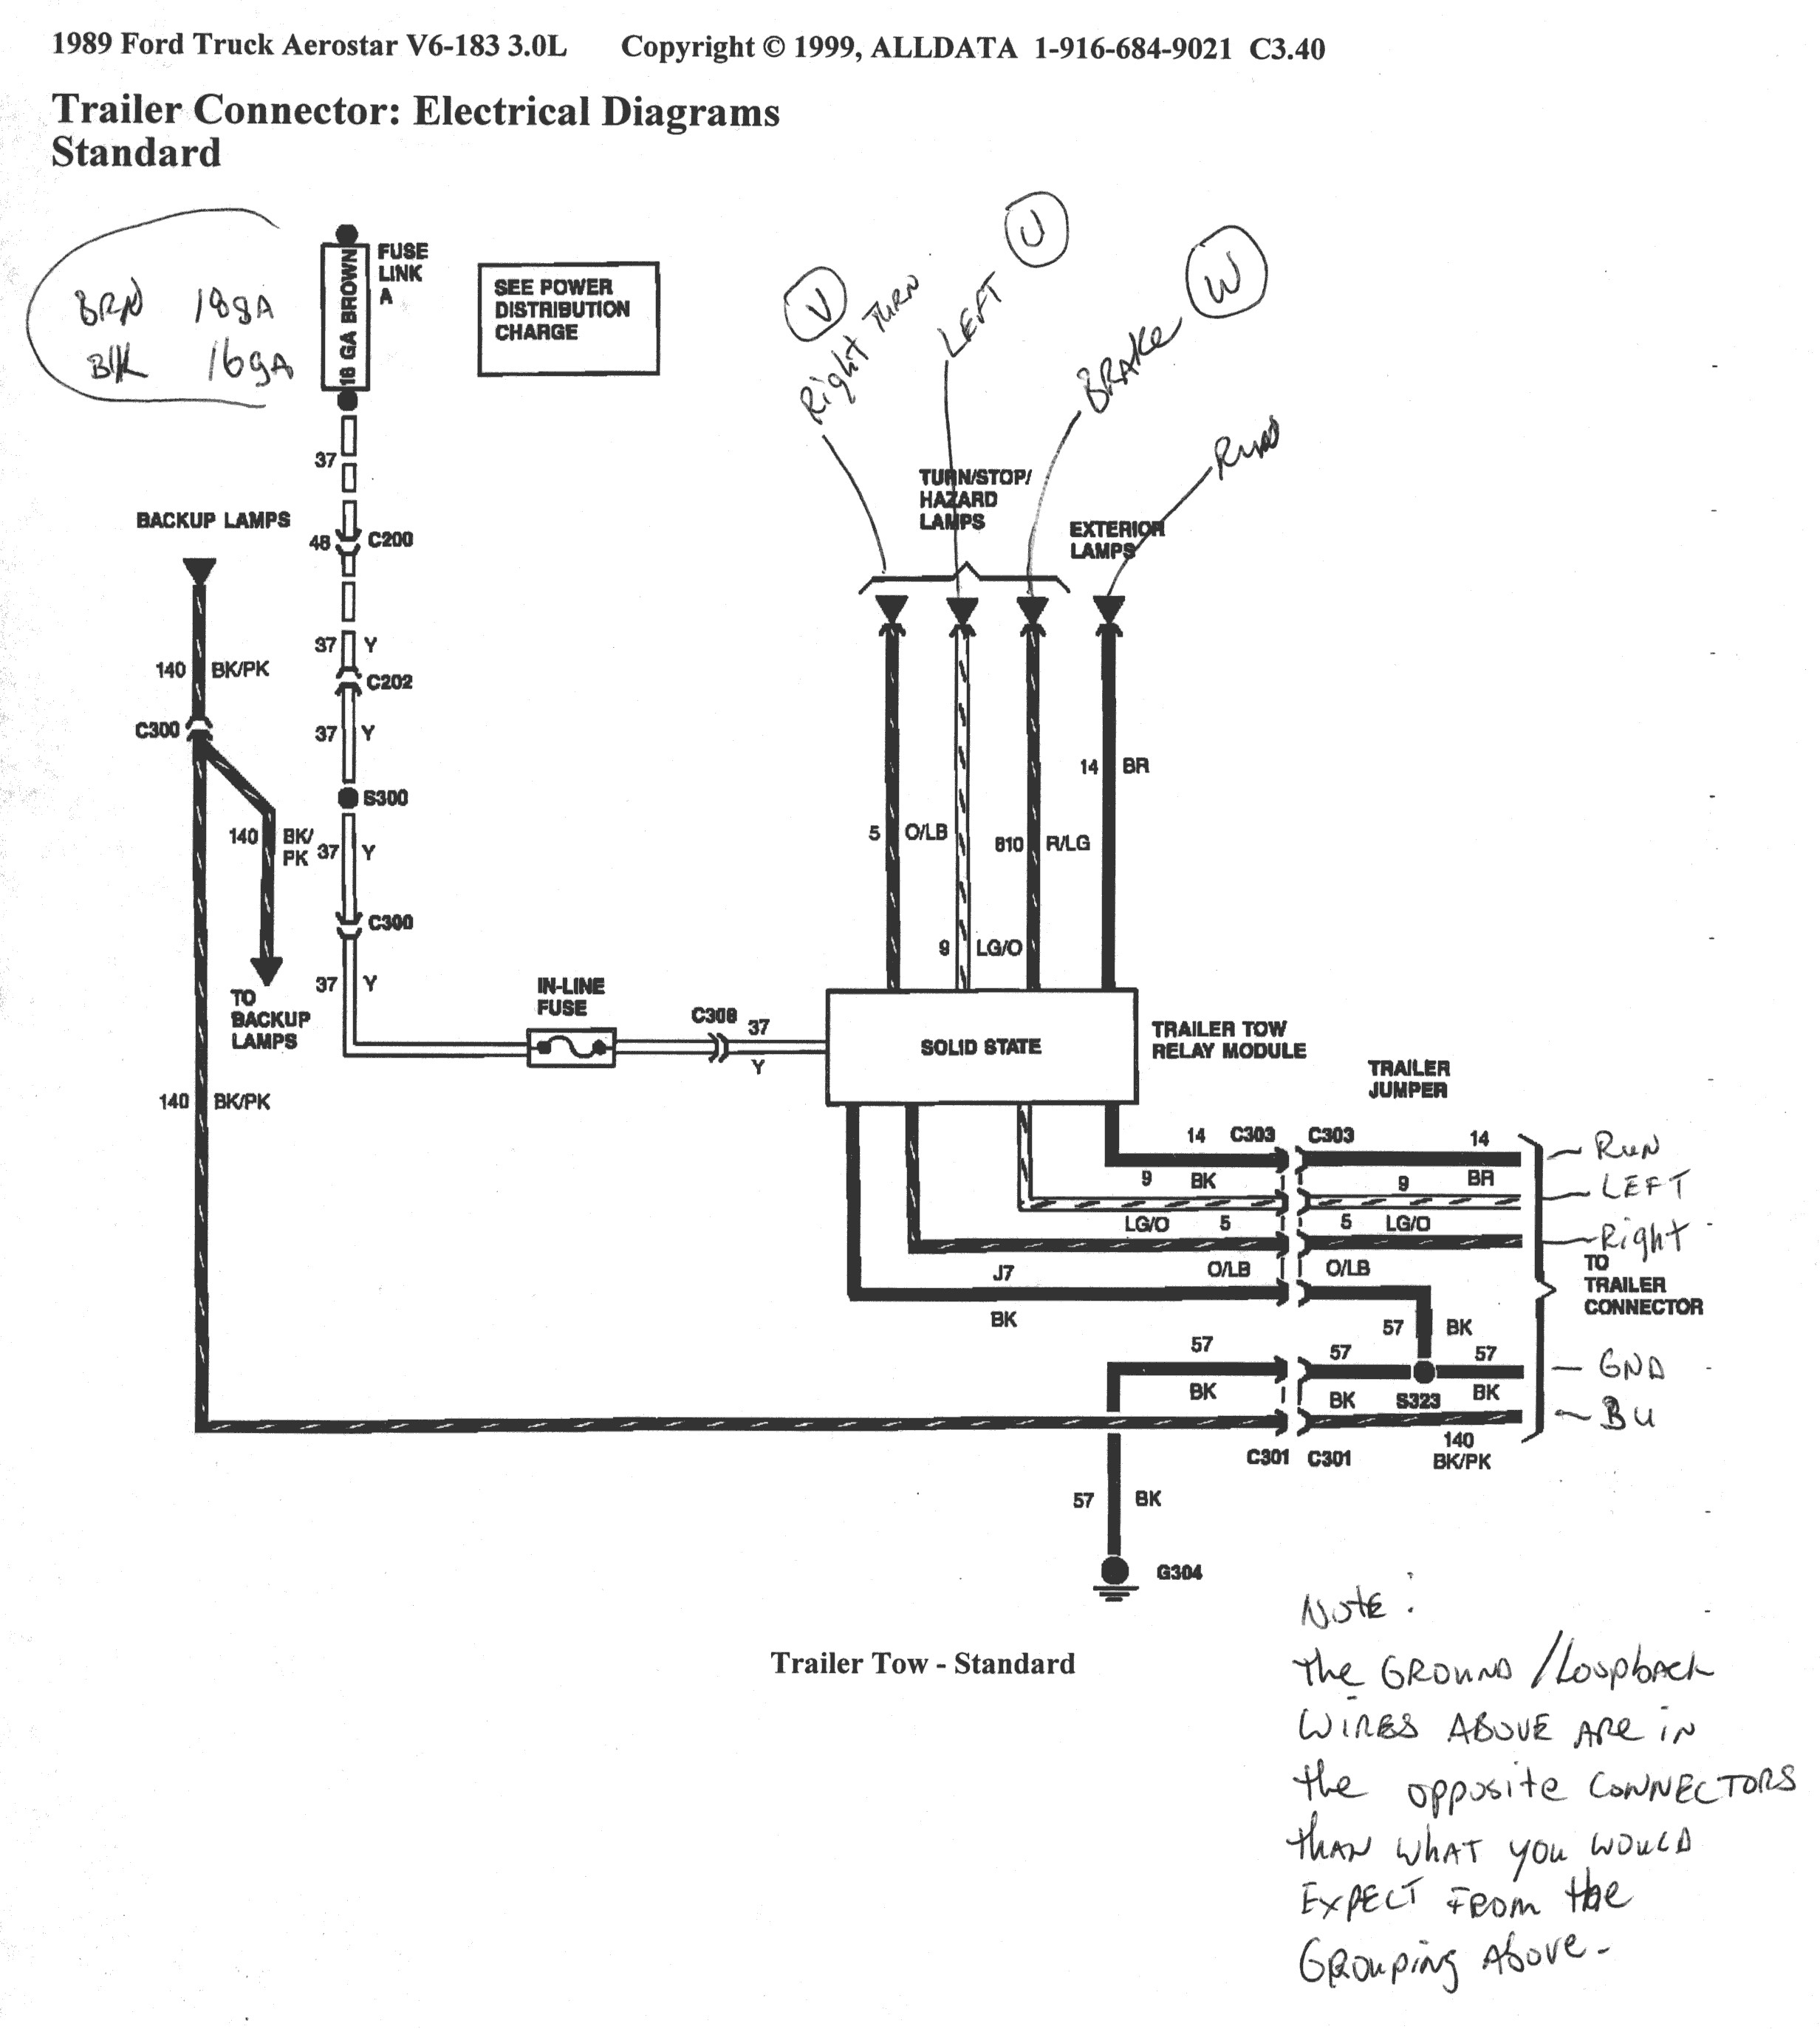 97 f150 trailer wiring diagram - ford f250 trailer wiring harness diagram  download great ford f150